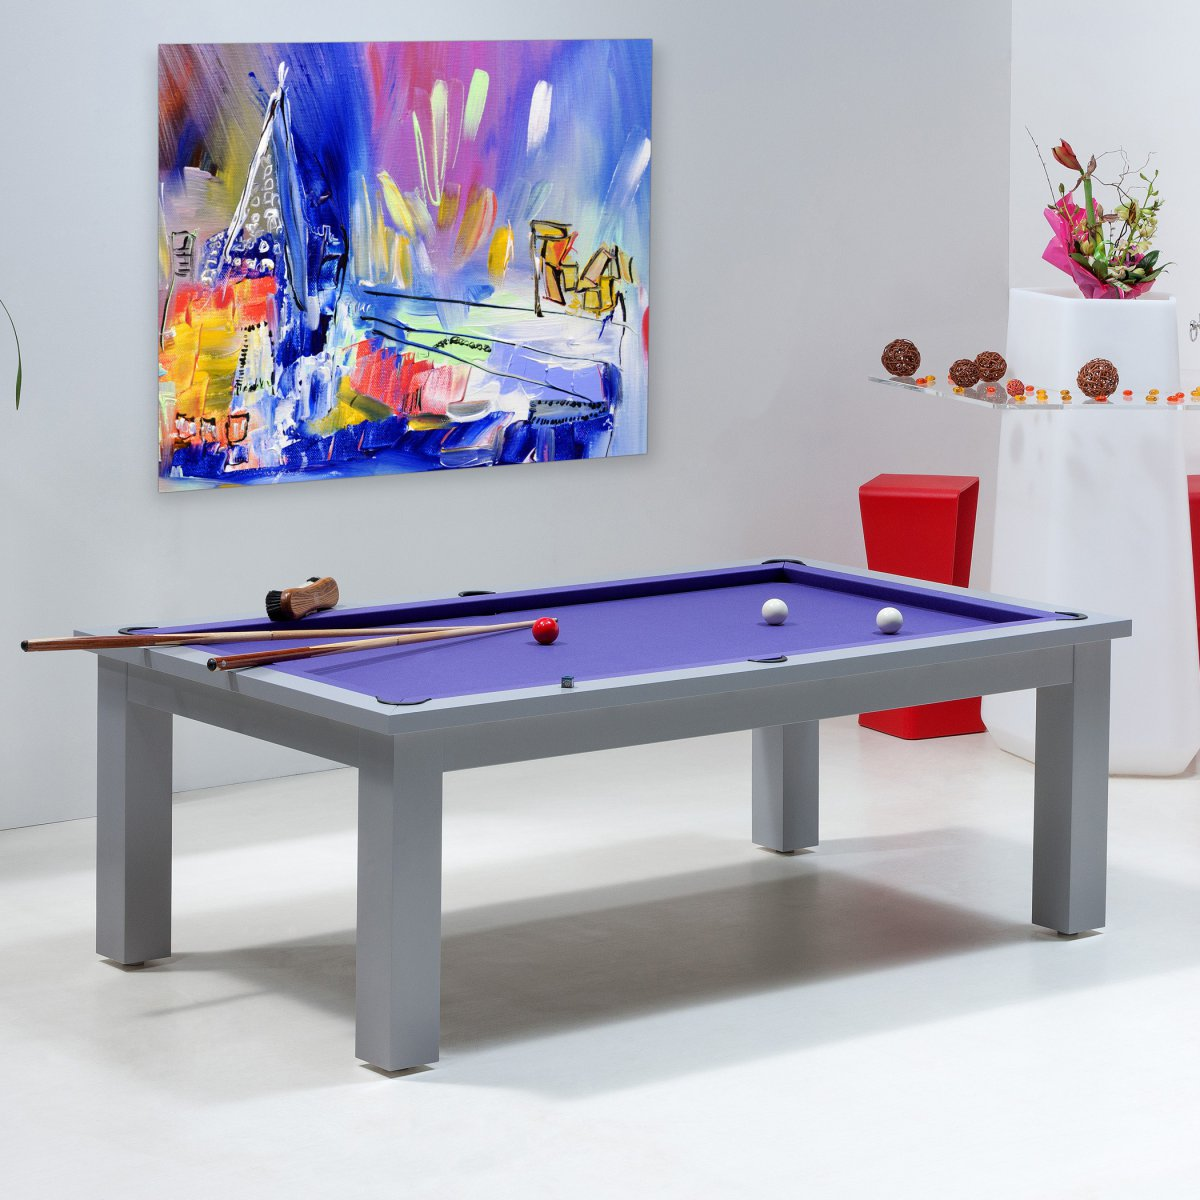 Table billard convertible billard transformable table boston - Billard transformable en table ...